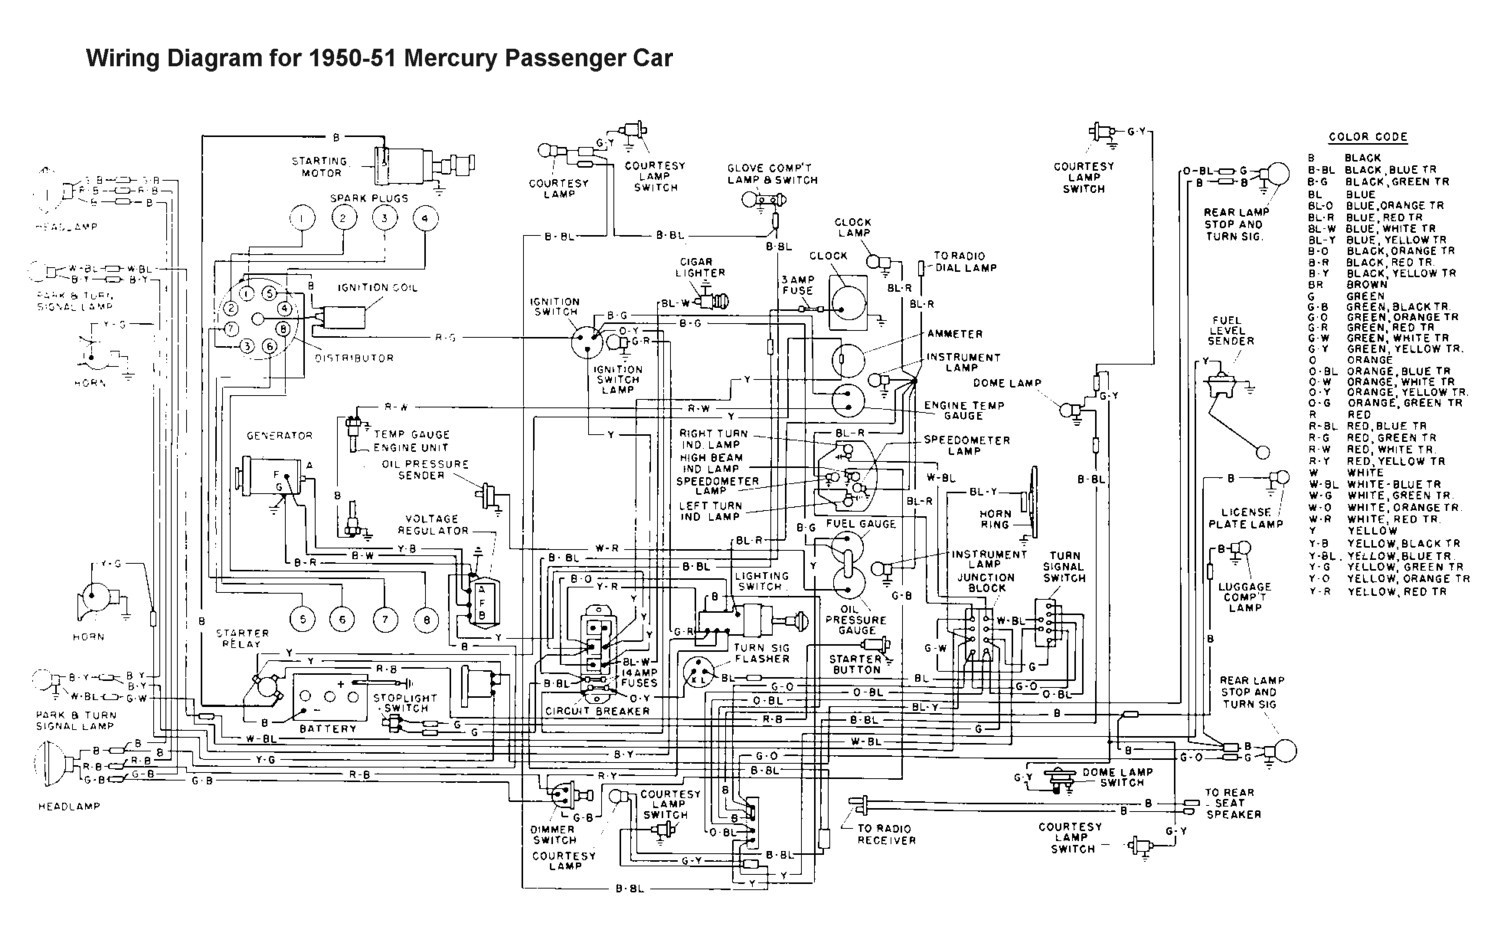 flathead electrical wiring diagrams 1950 Ford Truck Wiring Diagram wiring for 1950 51 mercury car